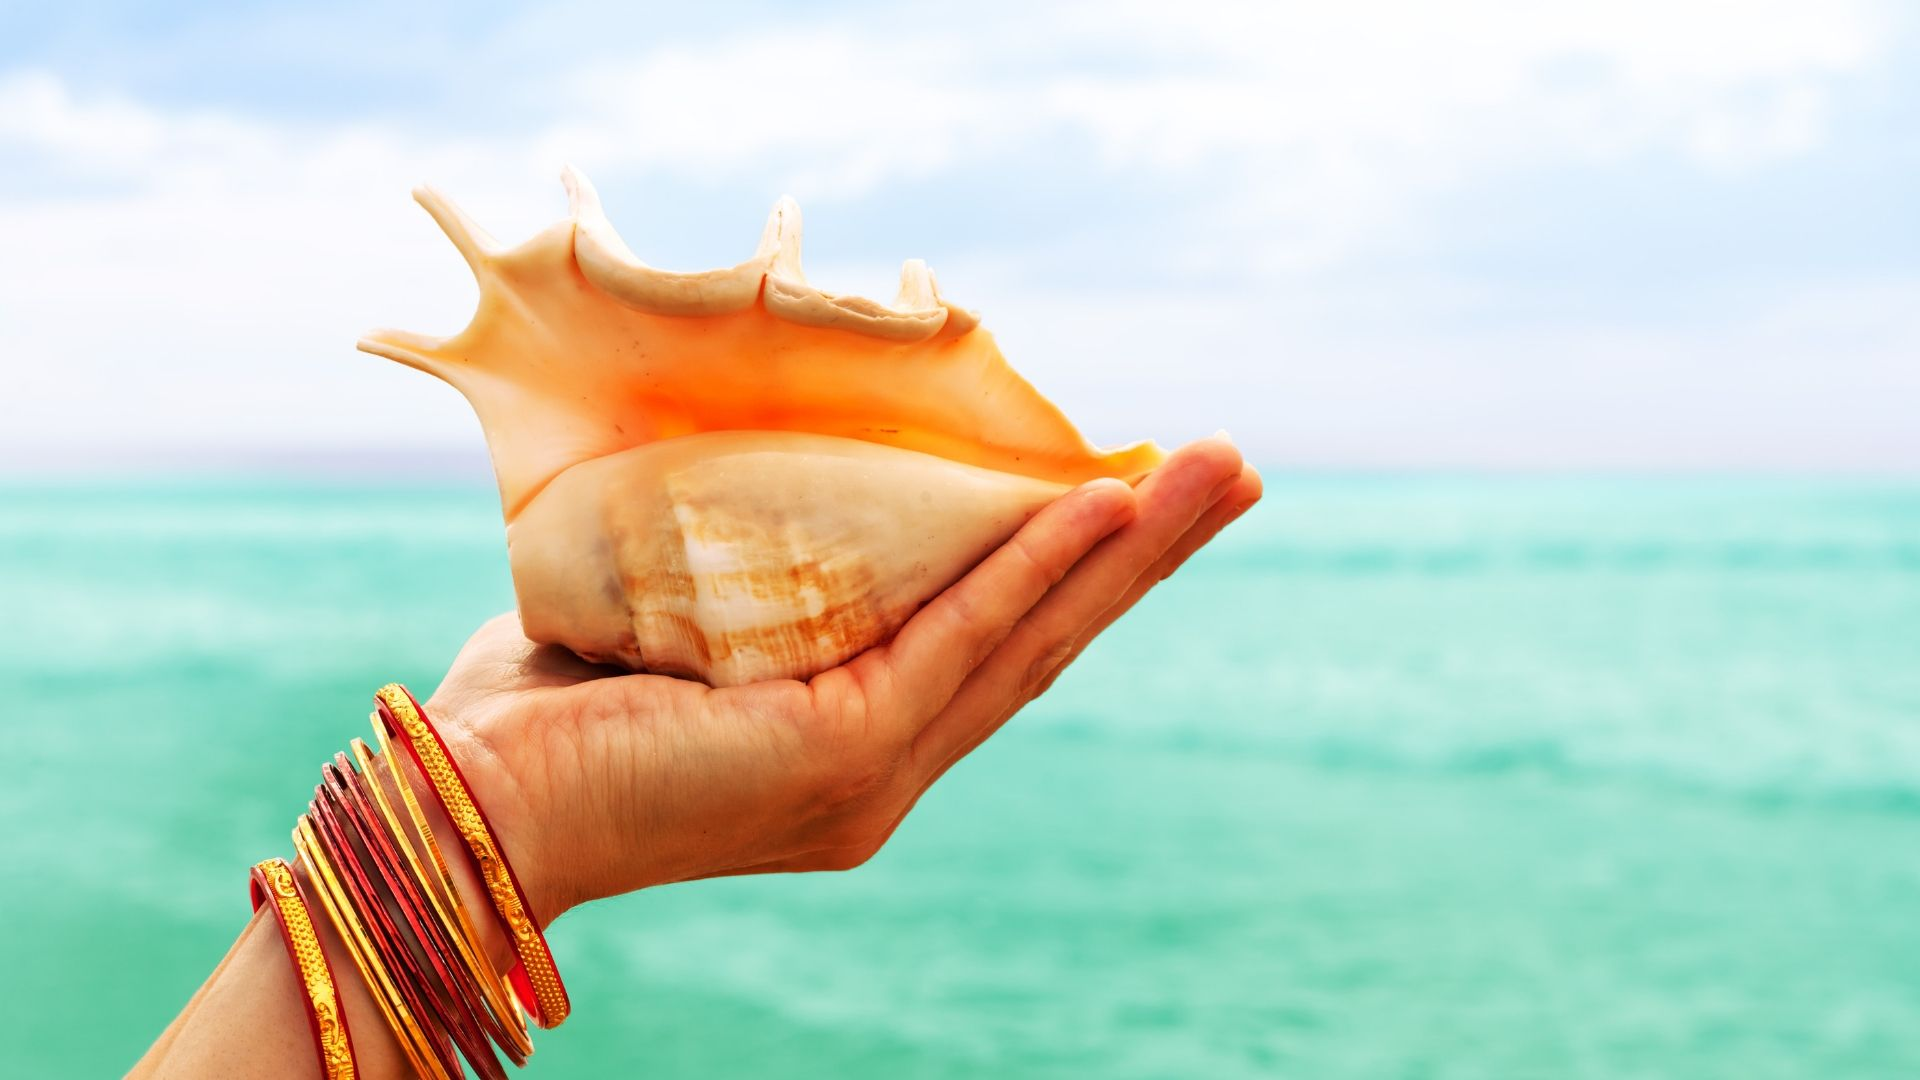 When Is the Best Time to Look for Seashells on the Beach?